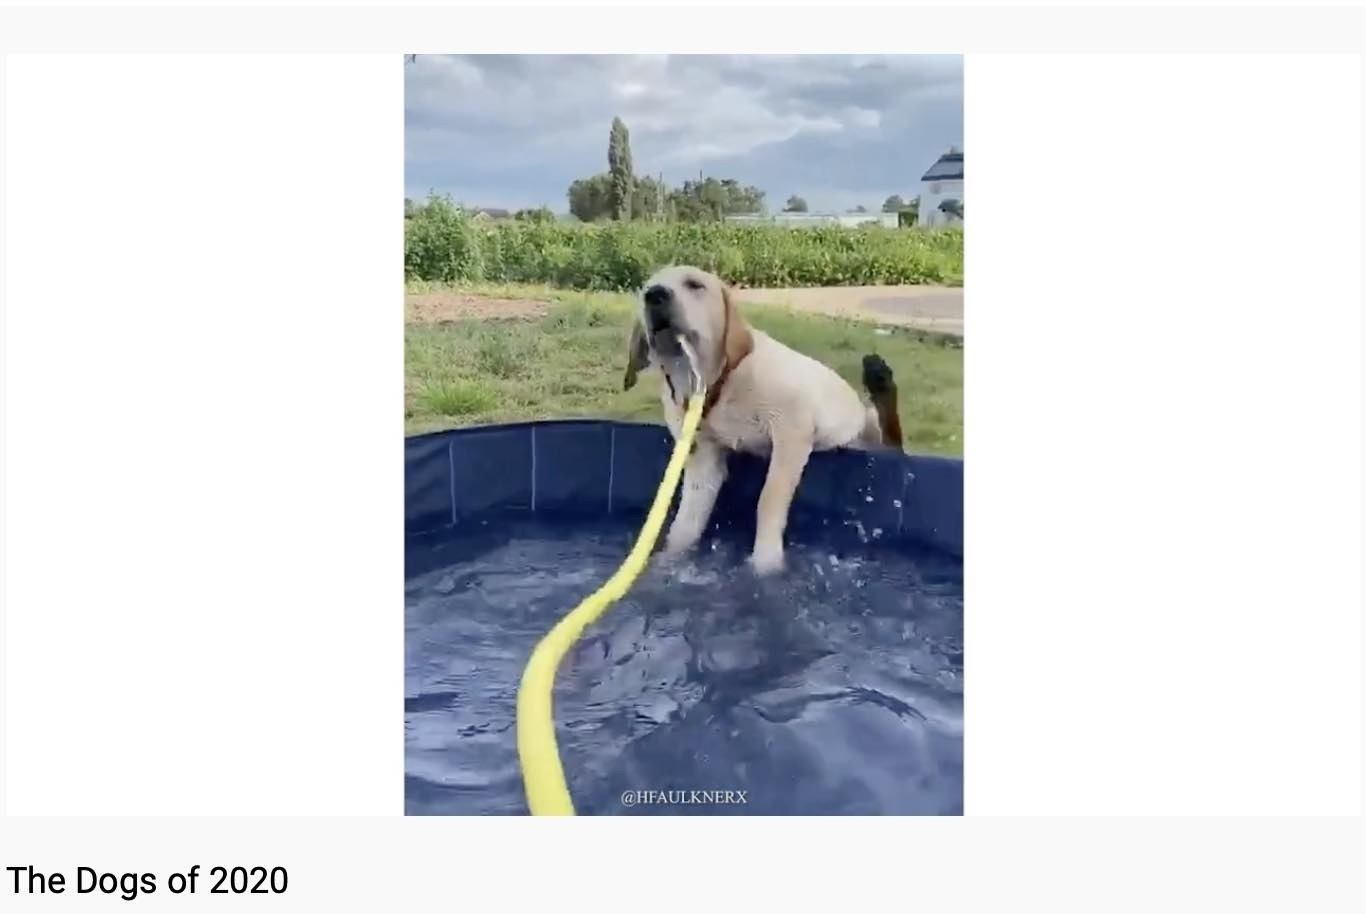 Dog in a paddling pool.